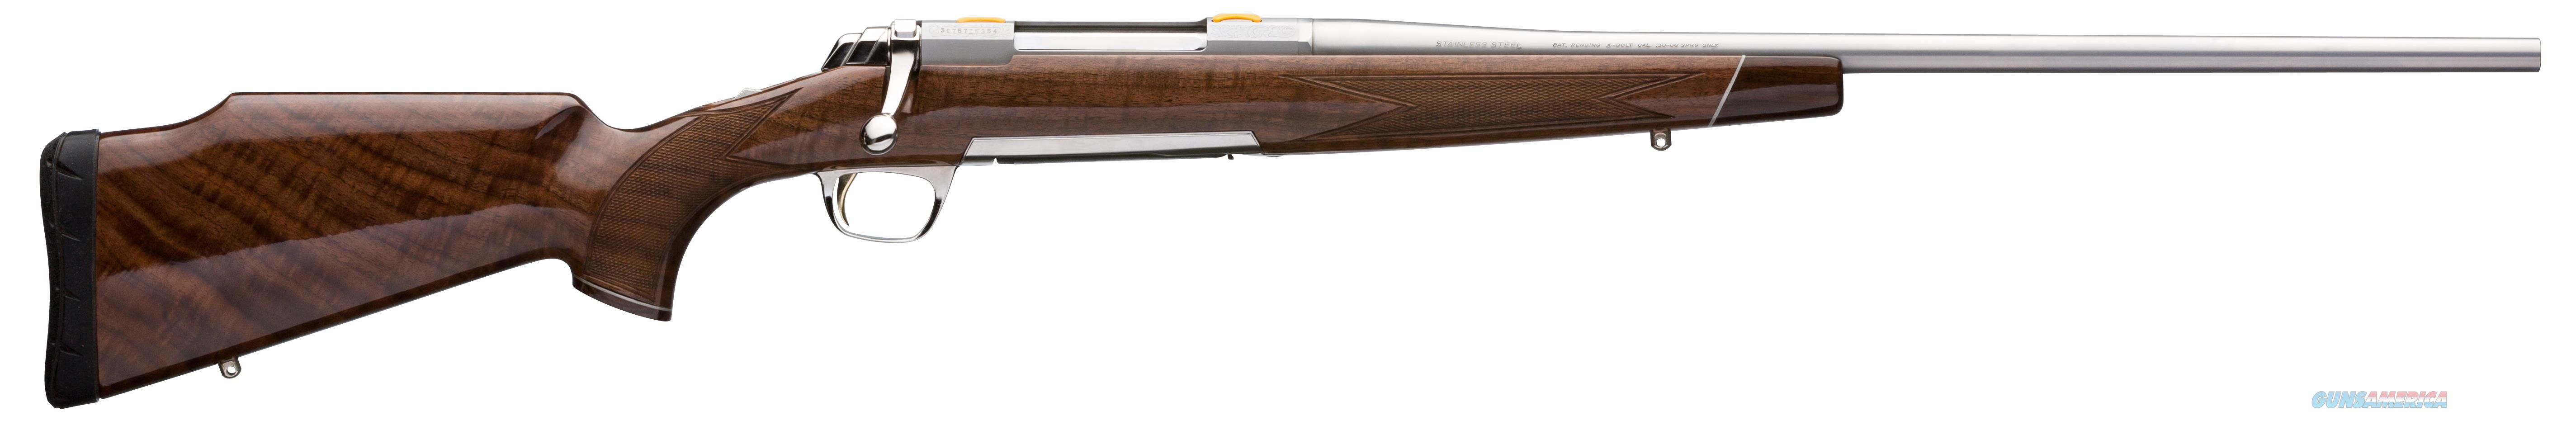 "Browning 035235227 X-Bolt White Gold Bolt 7mm Remington Magnum 26"" 3+1 Walnut Stk Stainless Steel  Guns > Rifles > Browning Rifles > Bolt Action"